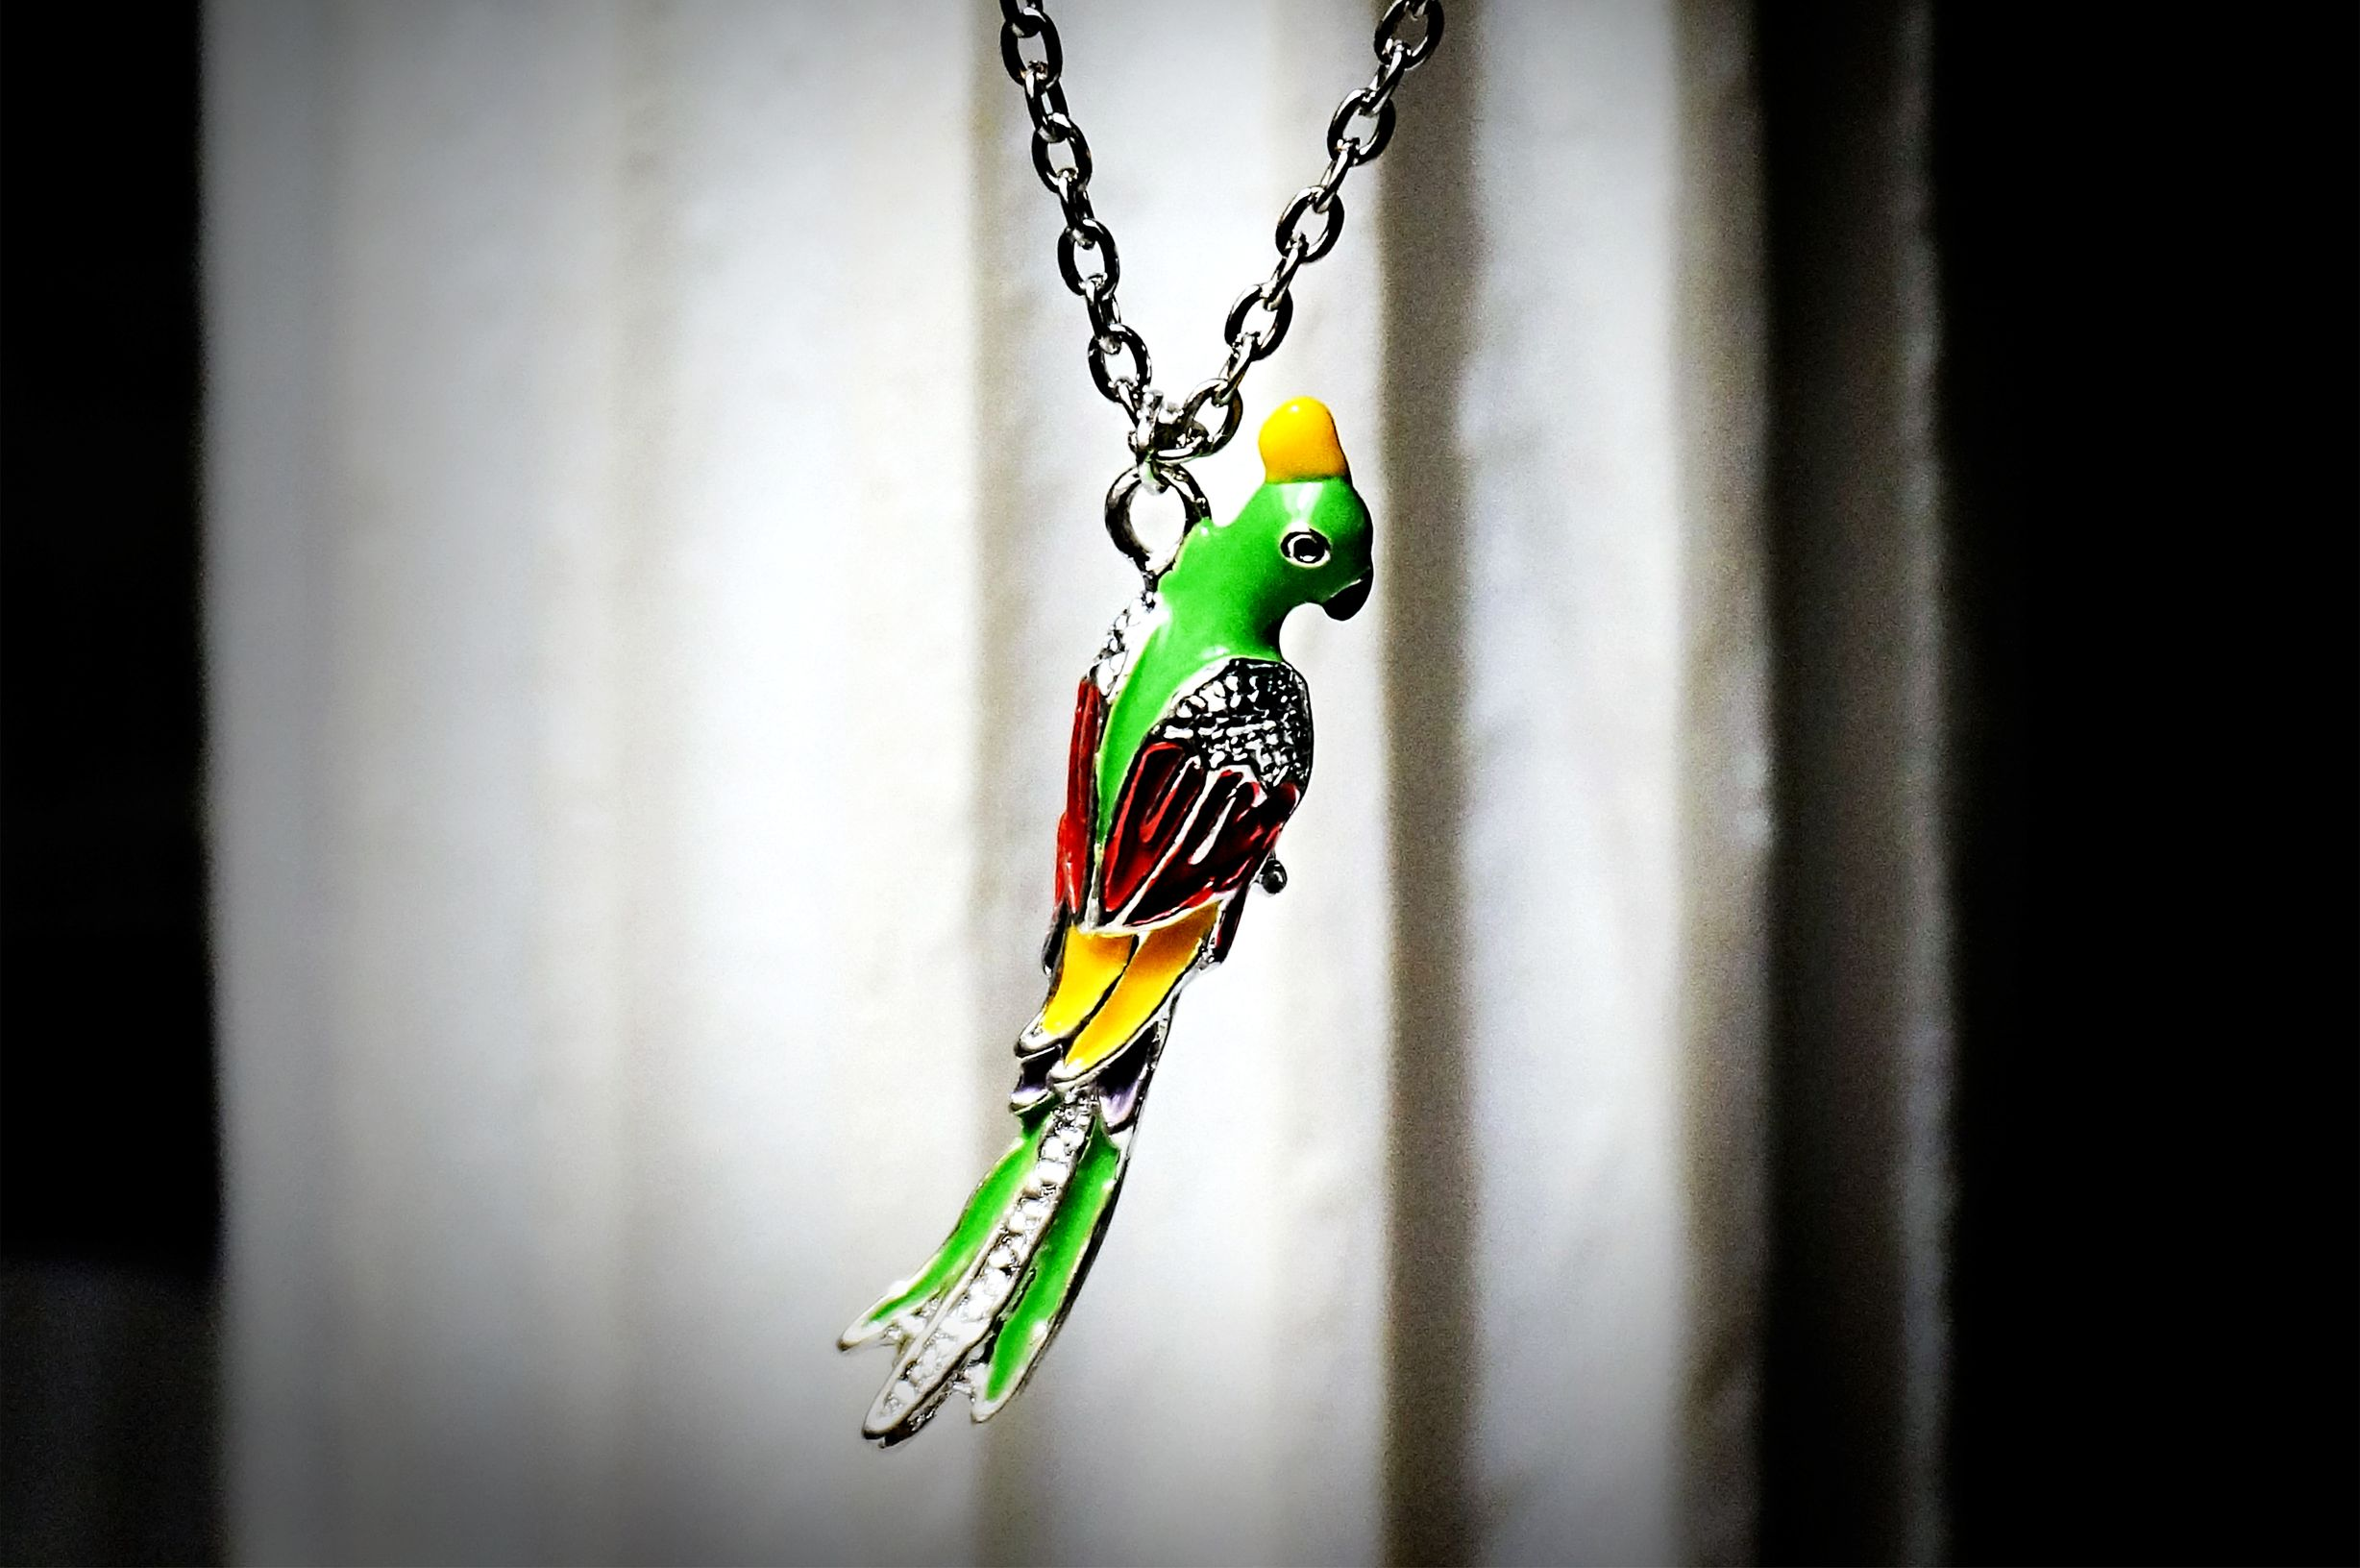 Hippie chic boho style necklace pendant parrot bird